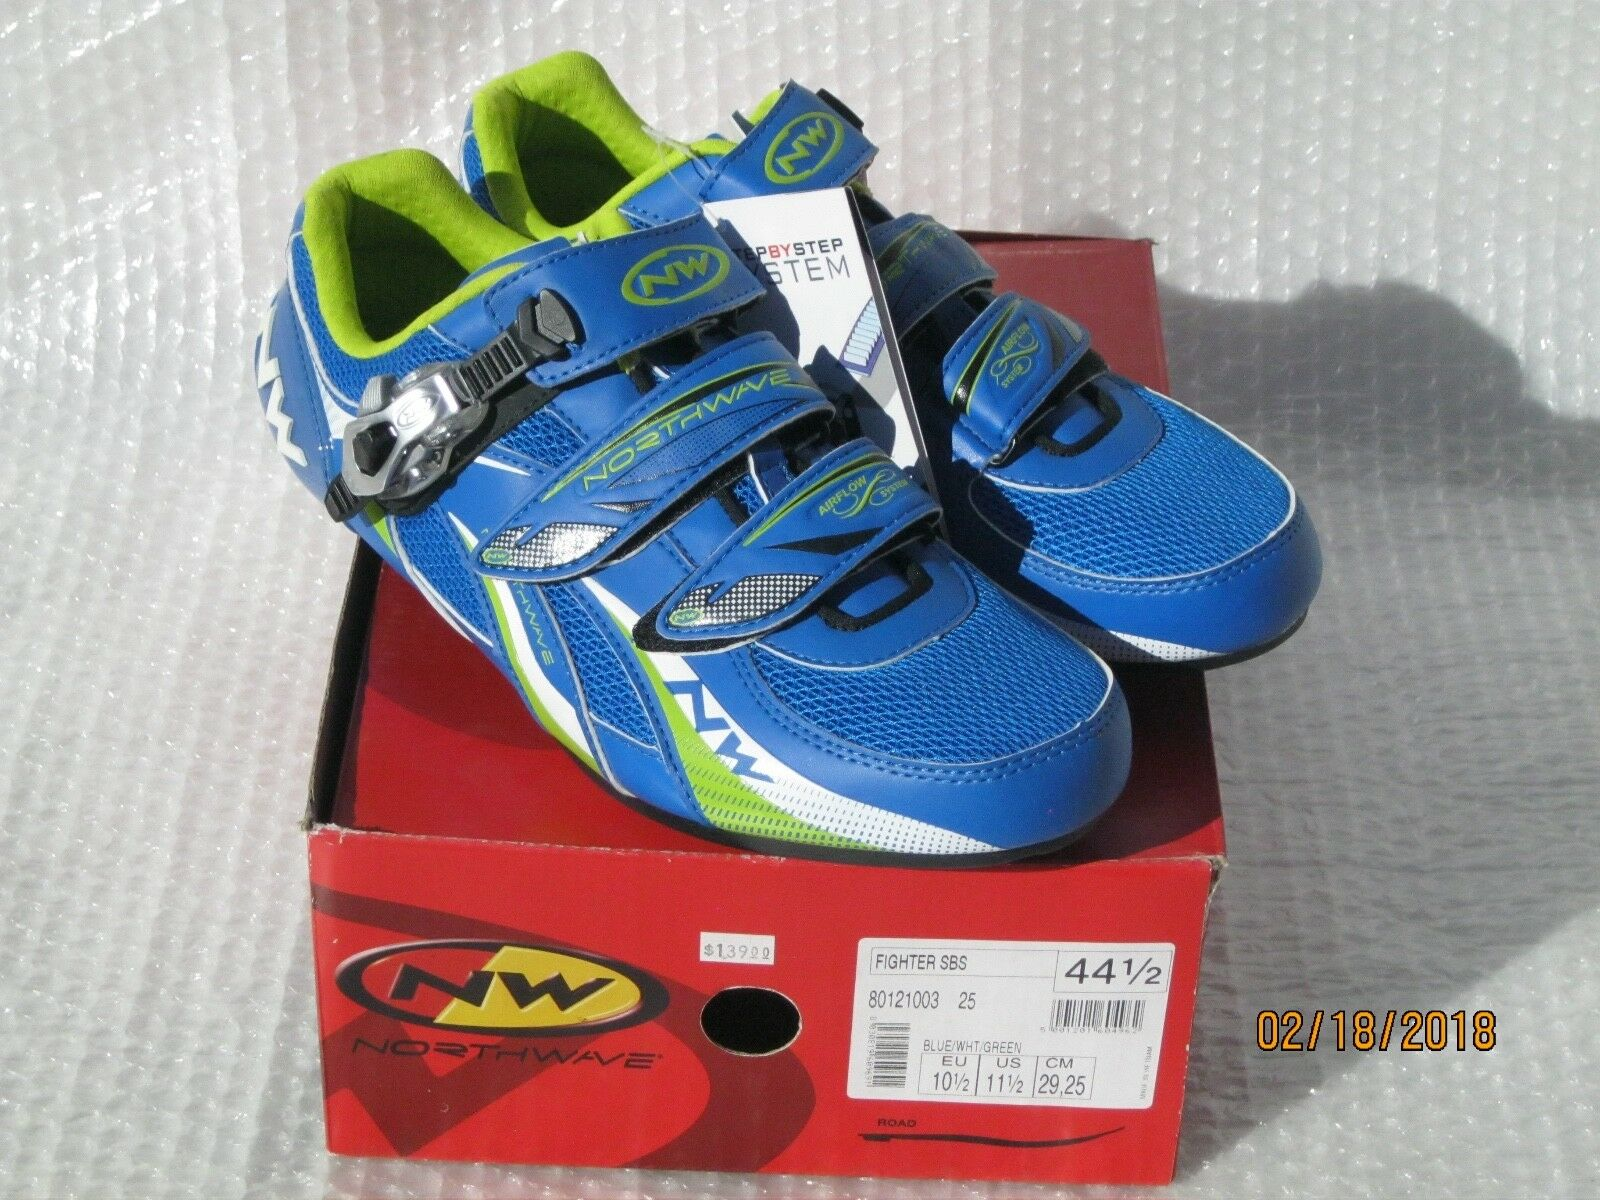 Road Bike cycling shoes NORTHWAVE Fighter SBS mens 44.5 bluee NEW